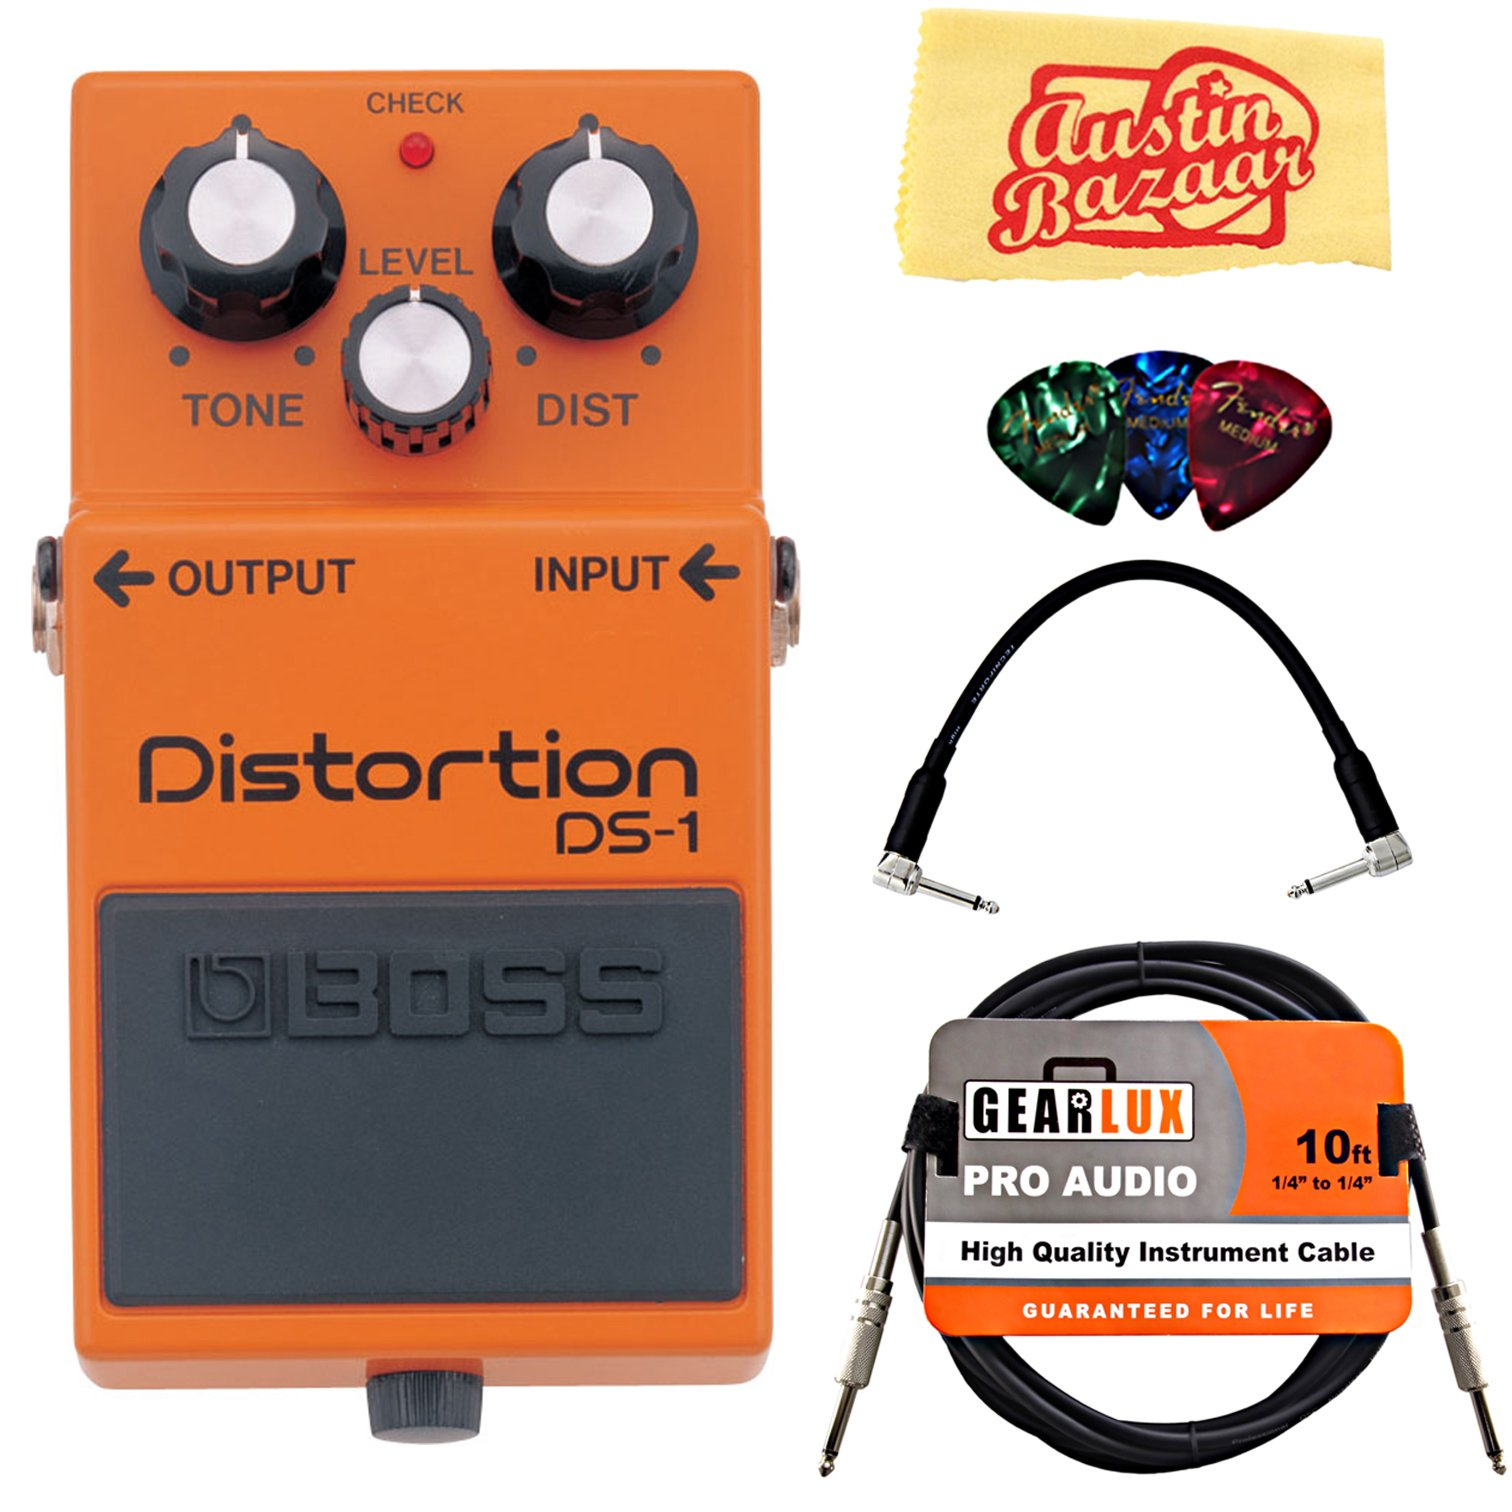 Boss DS-1 Distortion Bundle with Instrument Cable, Patch Cable, Picks, and Austin Bazaar Polishing Cloth by BOSS (Image #1)